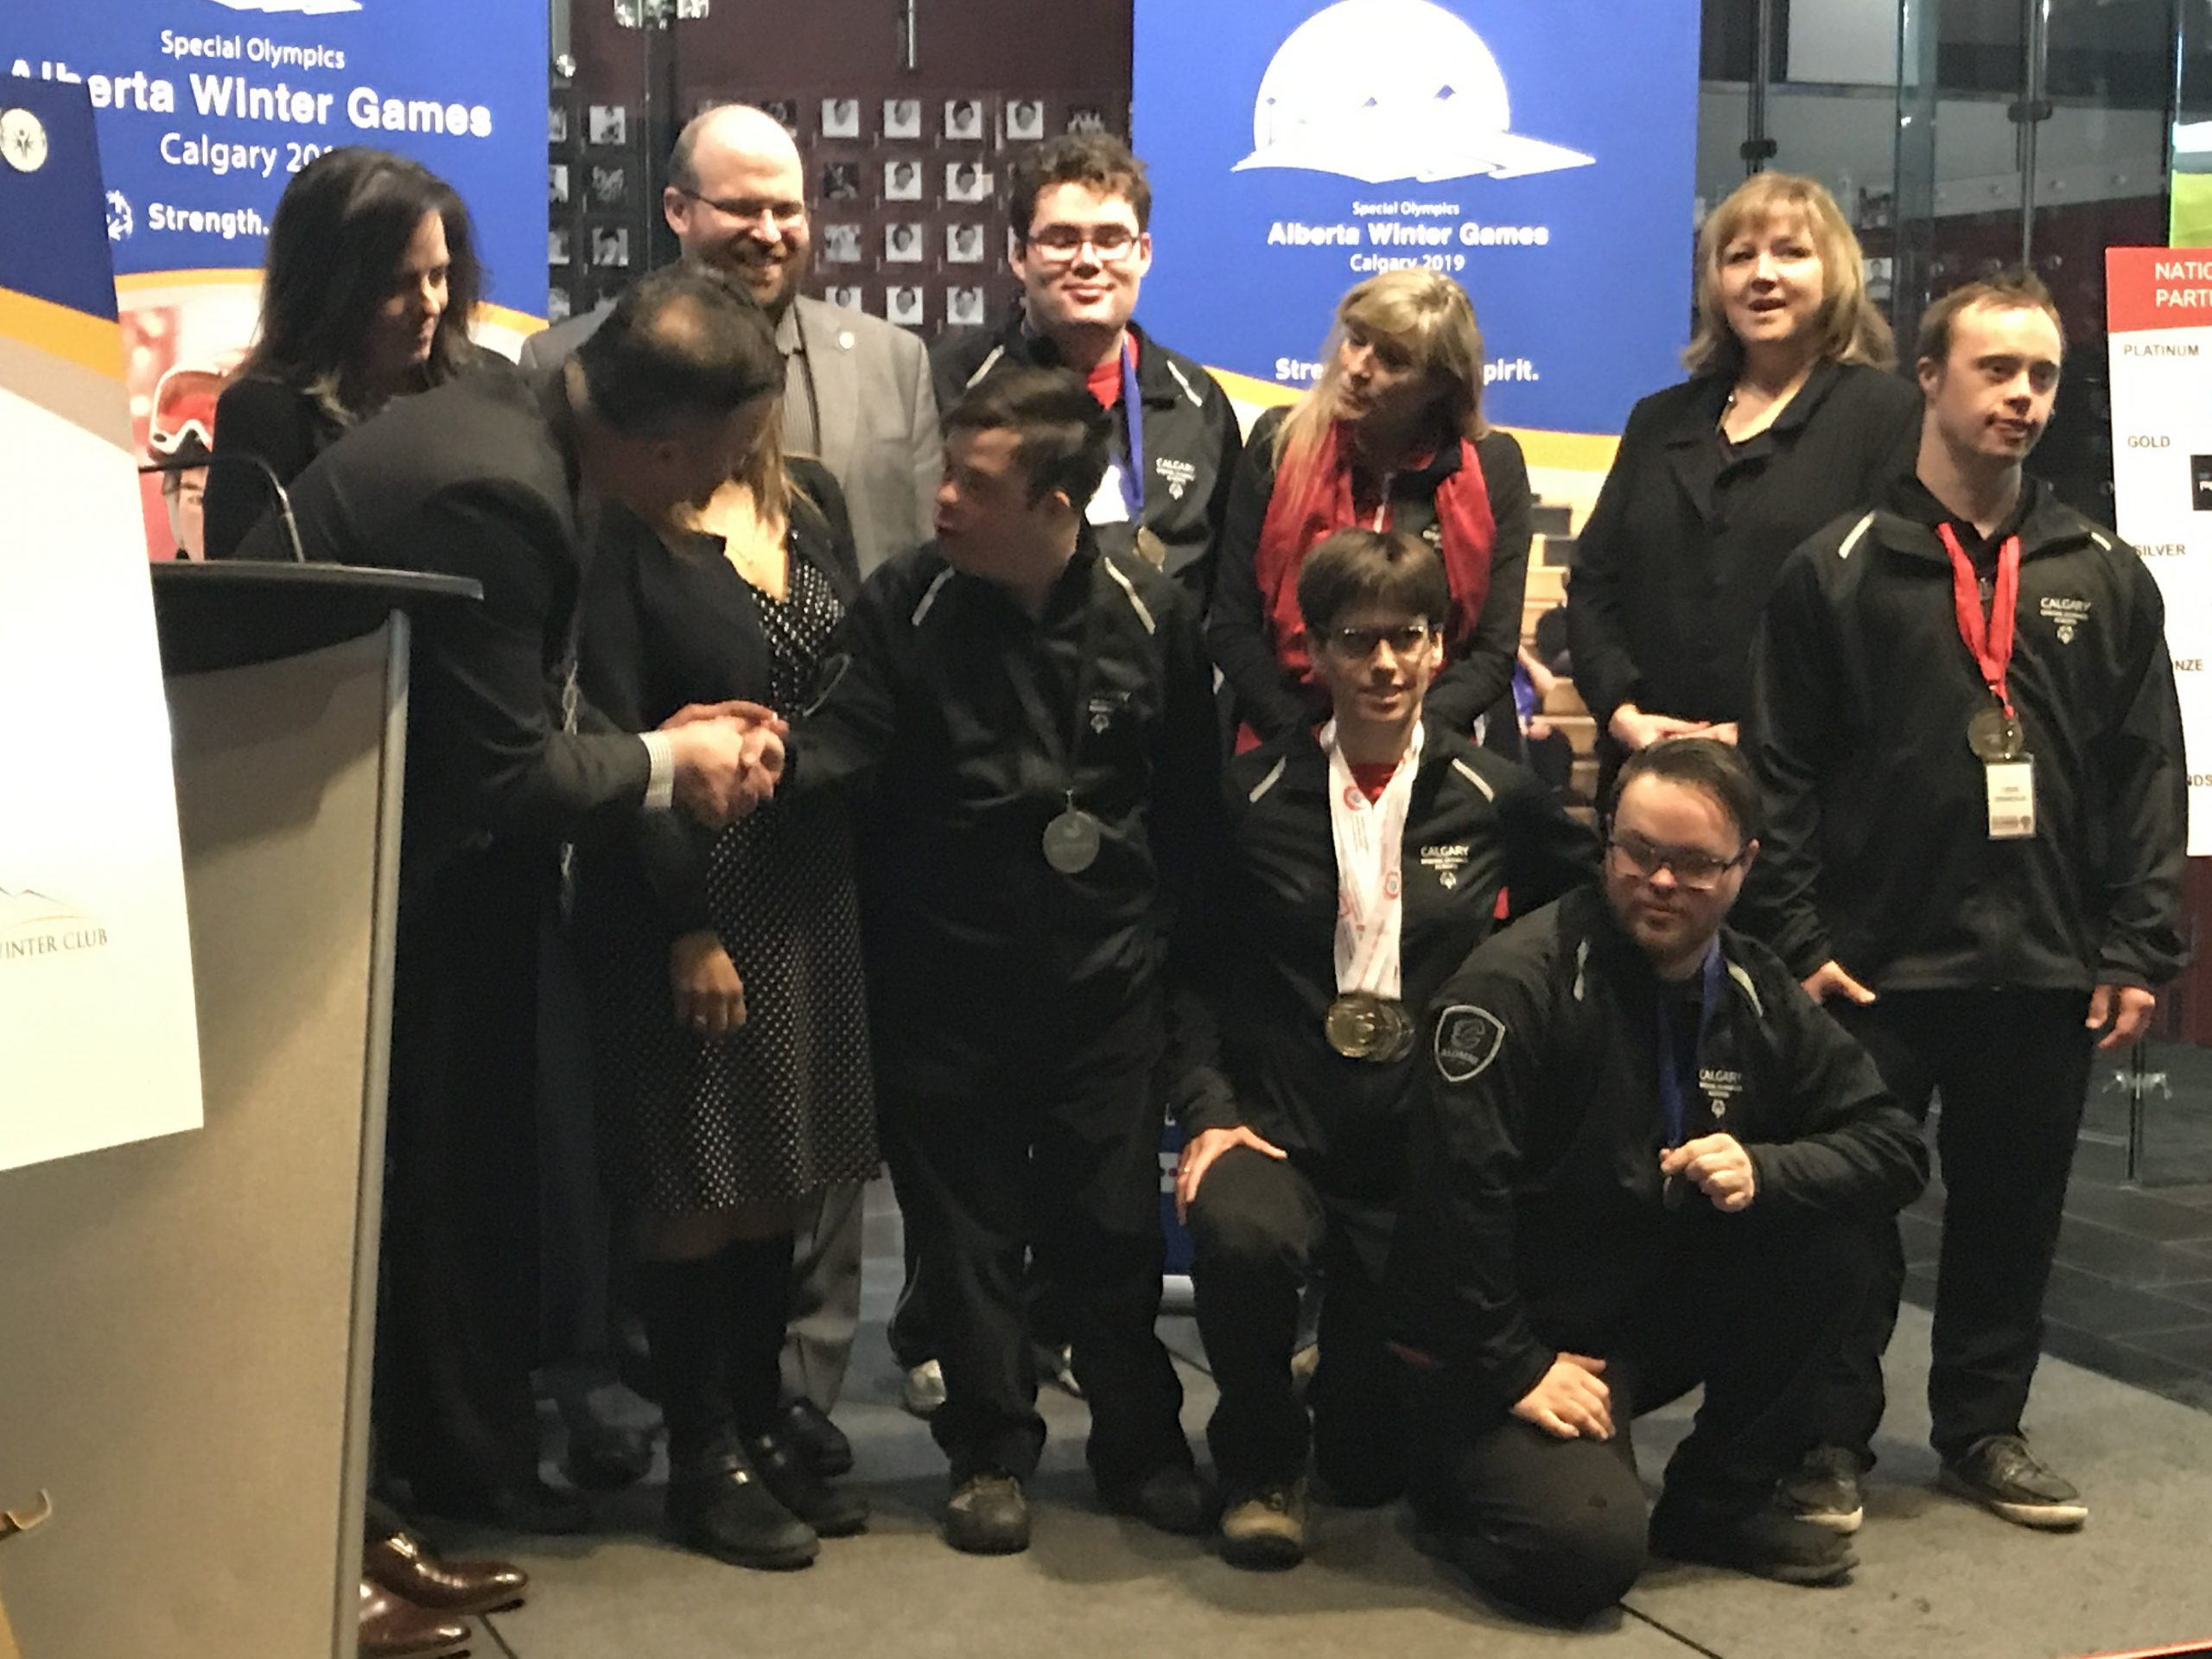 Calgary to host the 2019 Alberta Special Olympics Winter Games